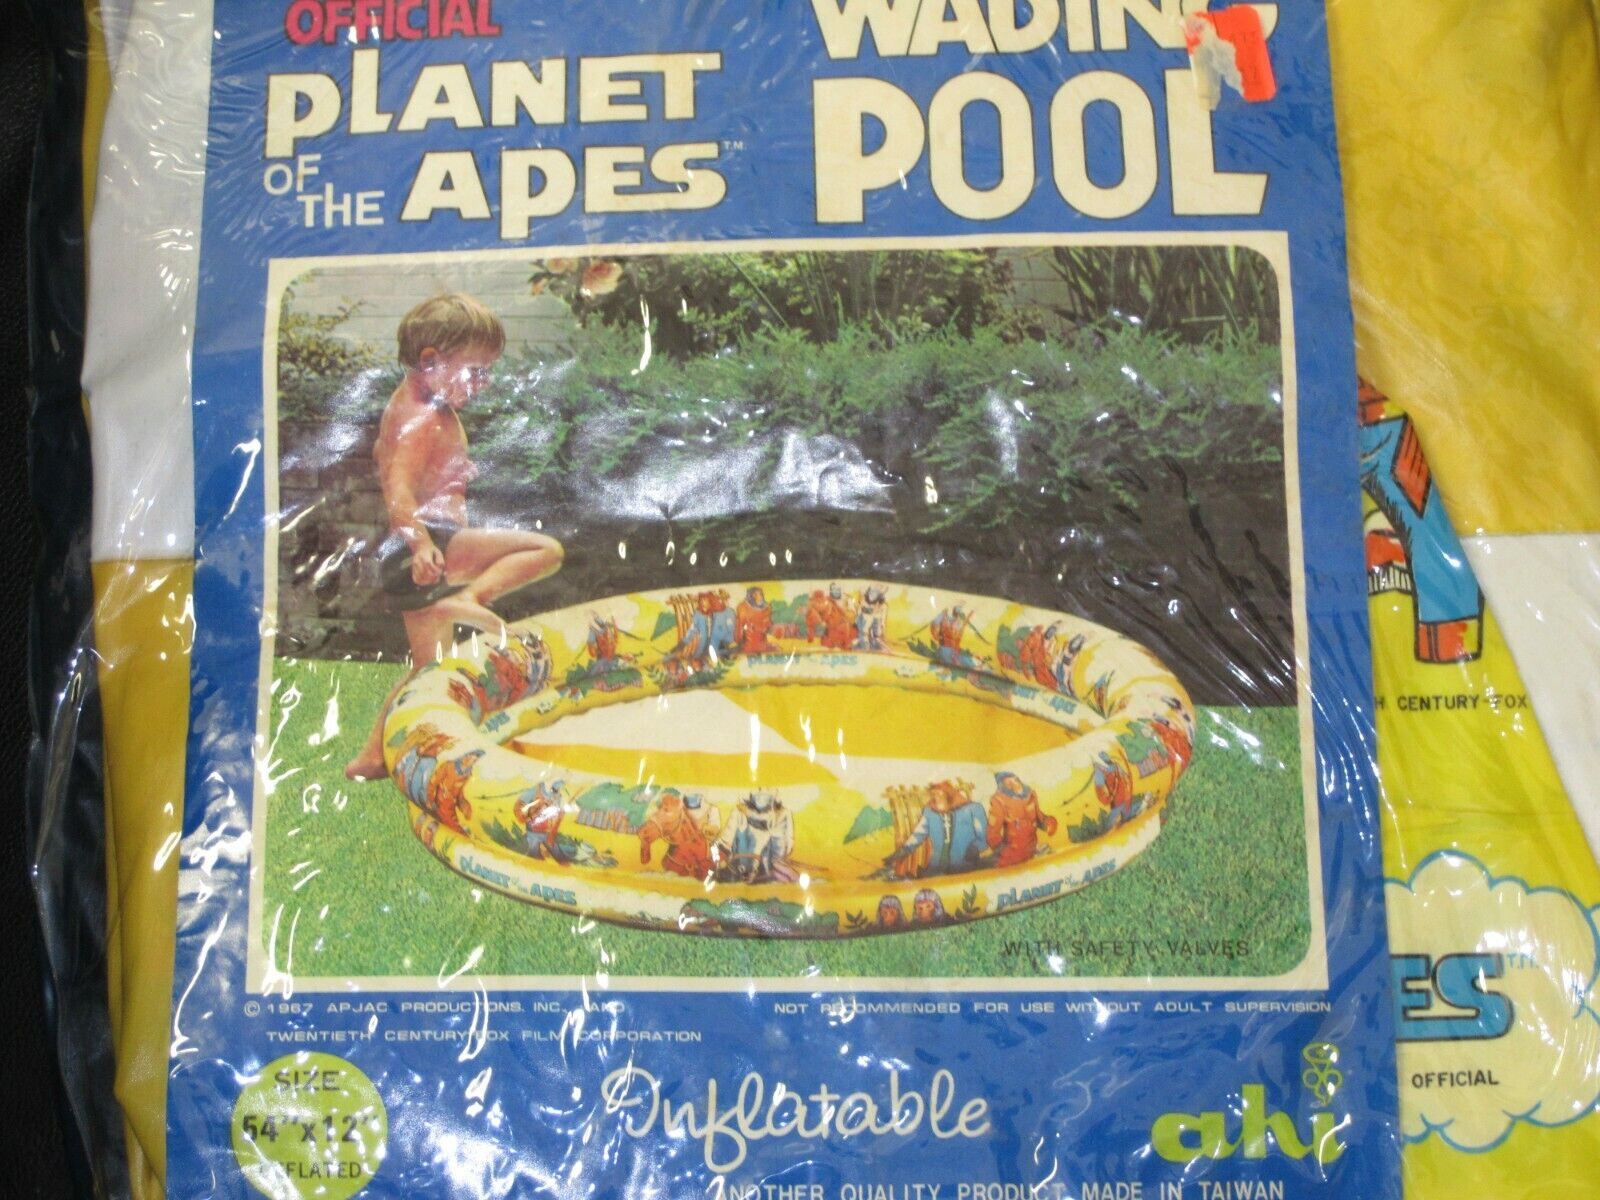 Planet of the Apes Pool